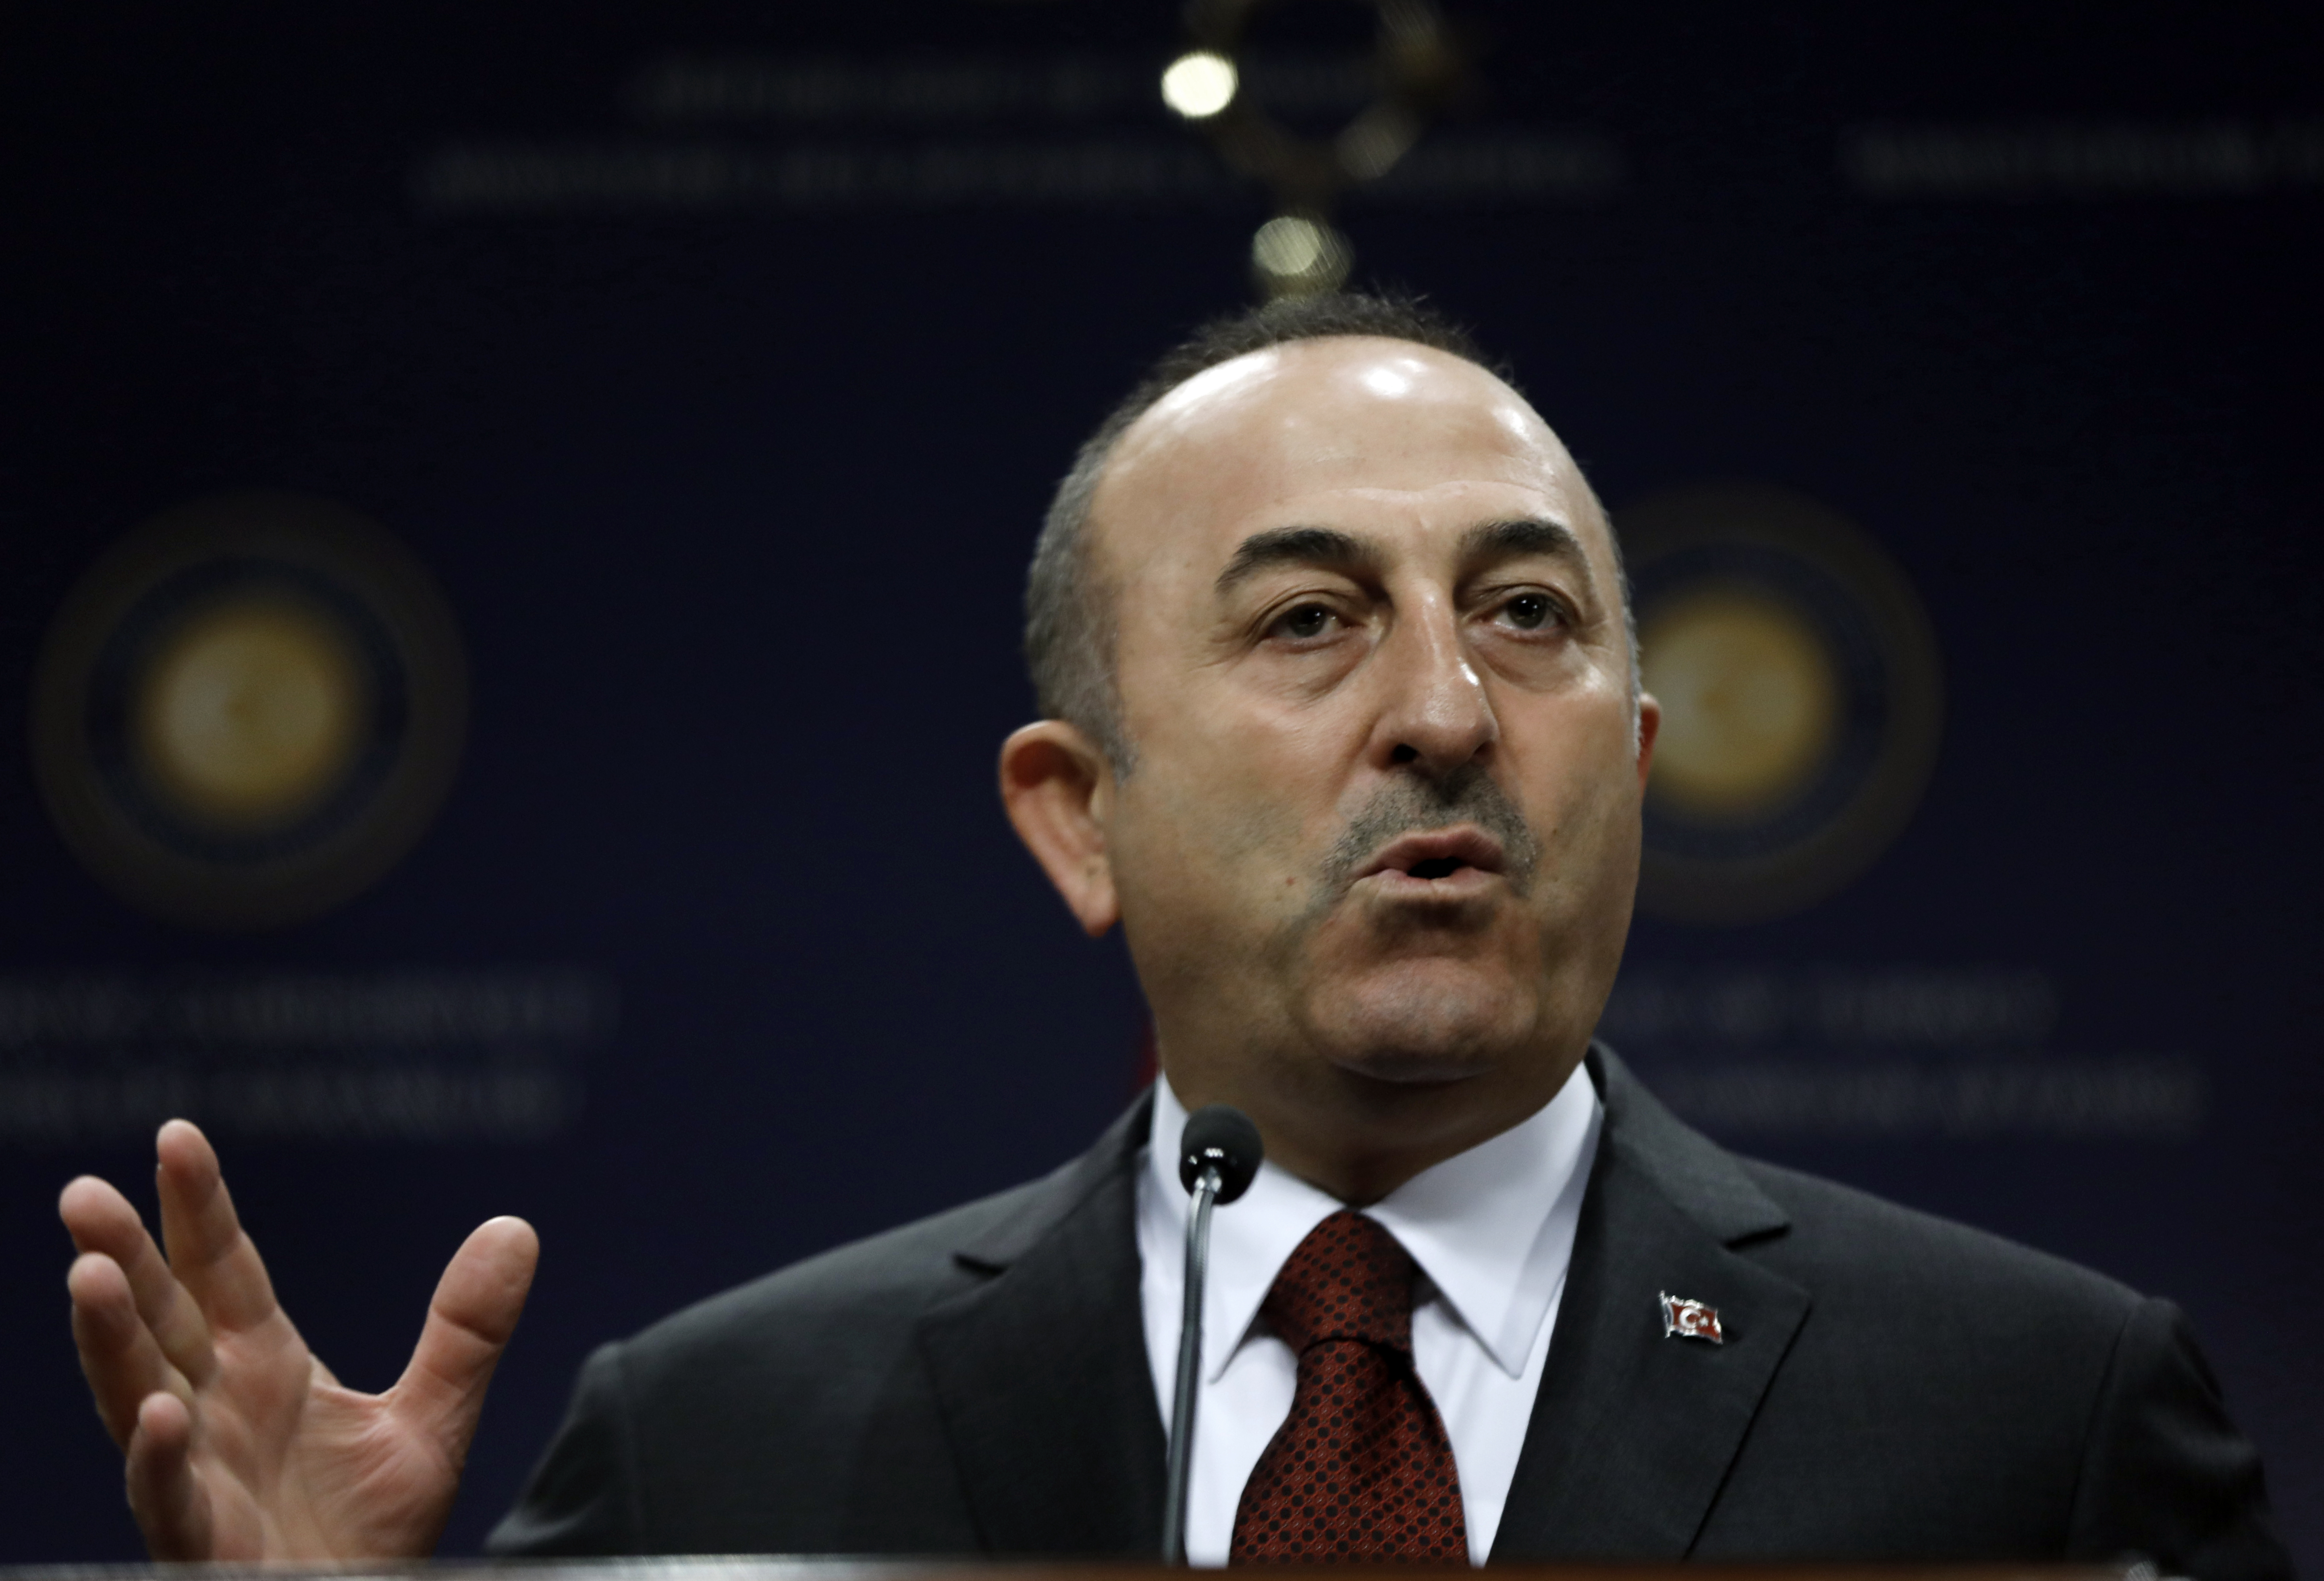 Turkey to consider Russian-made fighter jets, should U.S. cancel F-35 deal